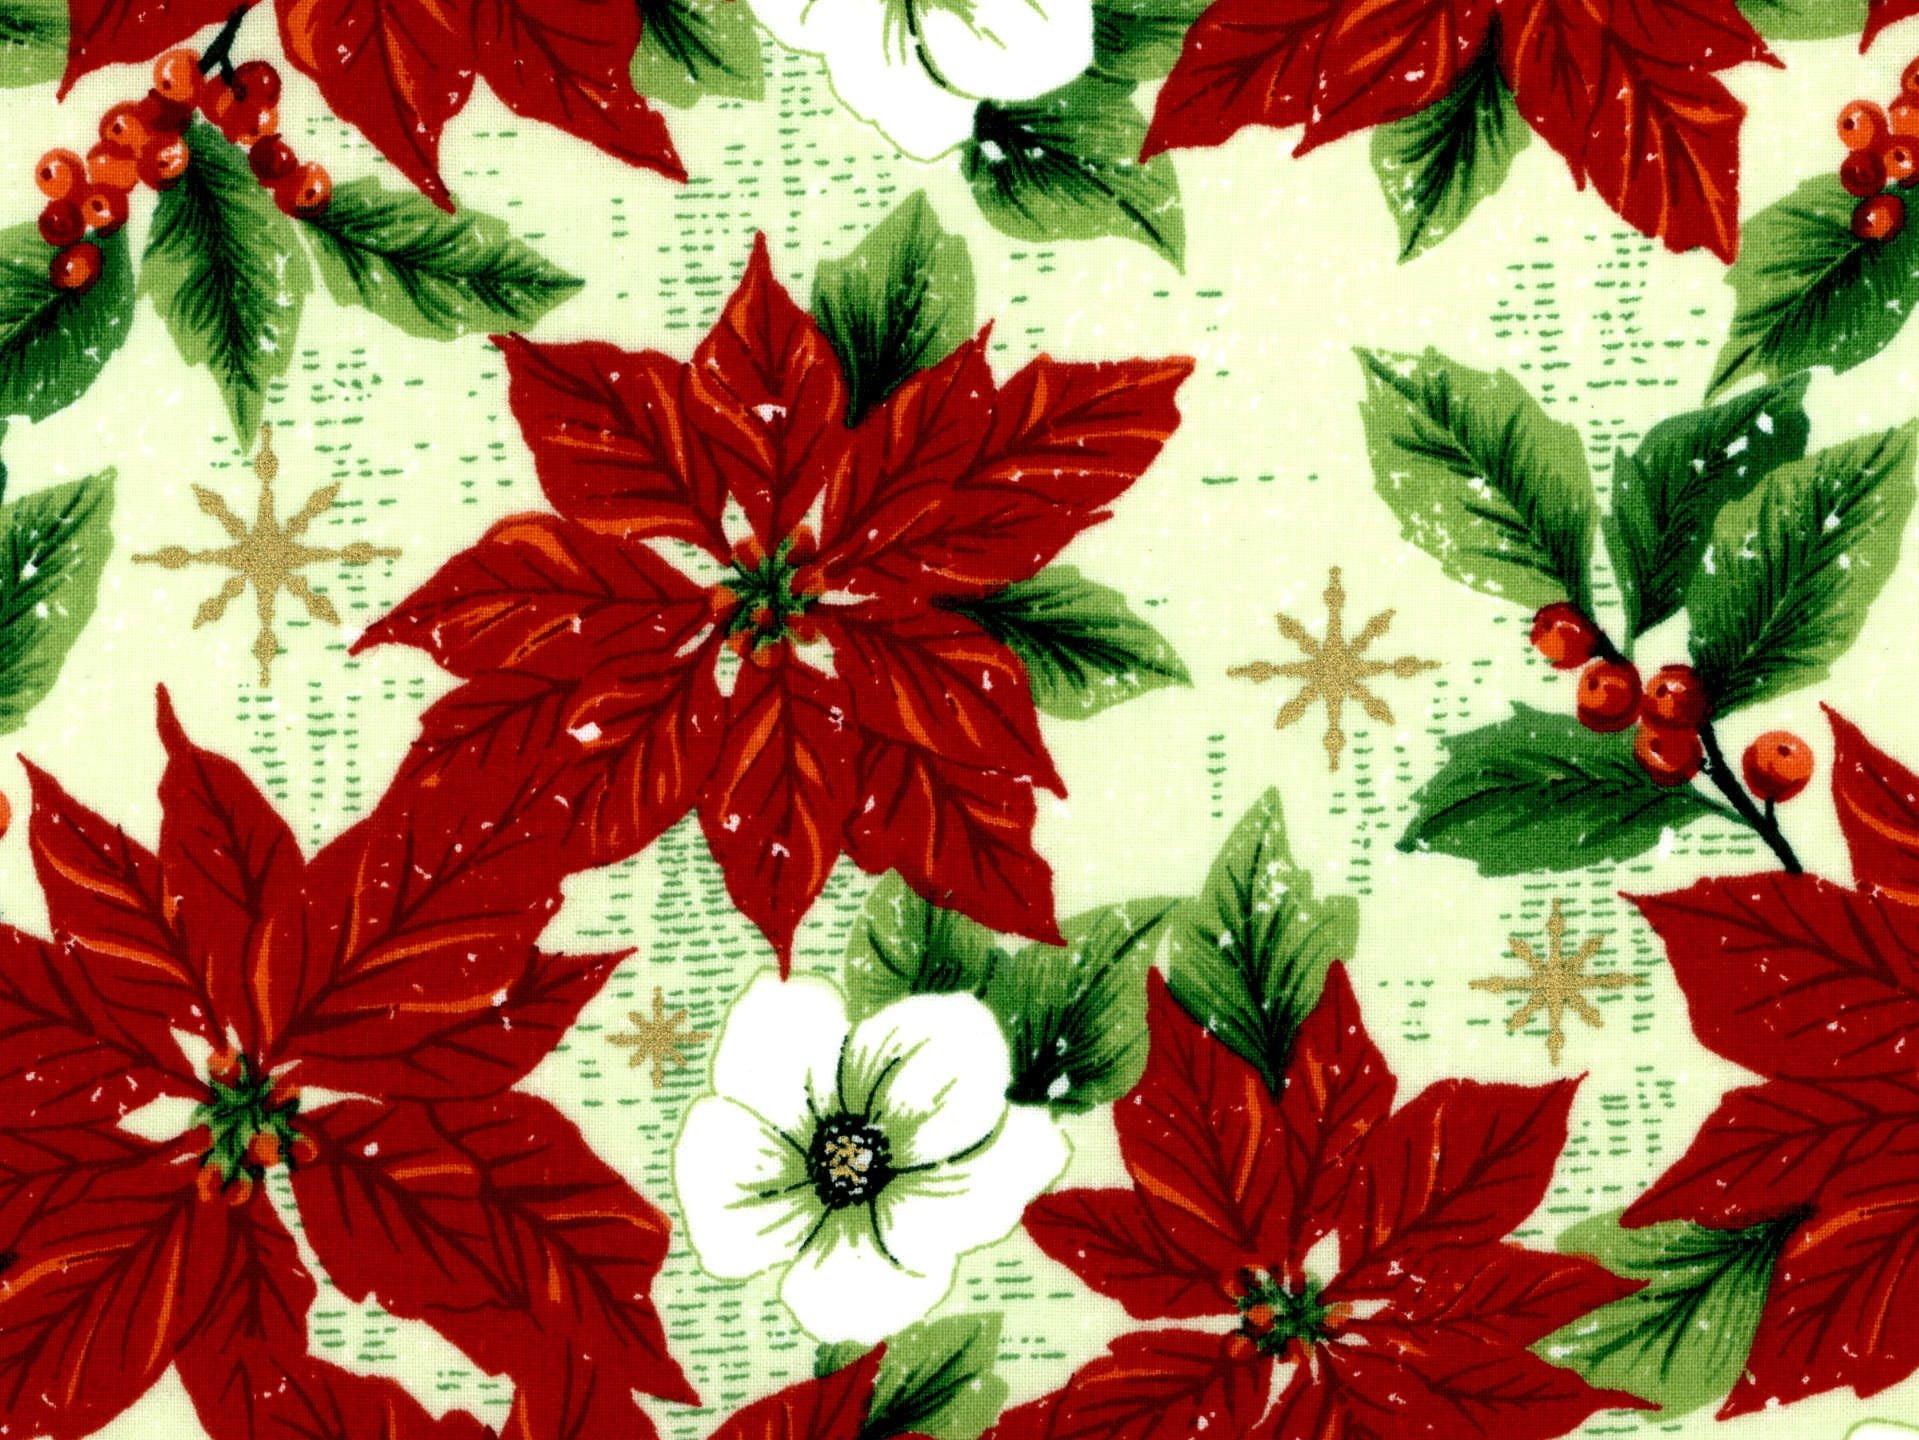 Poinsettia with Metallic accents